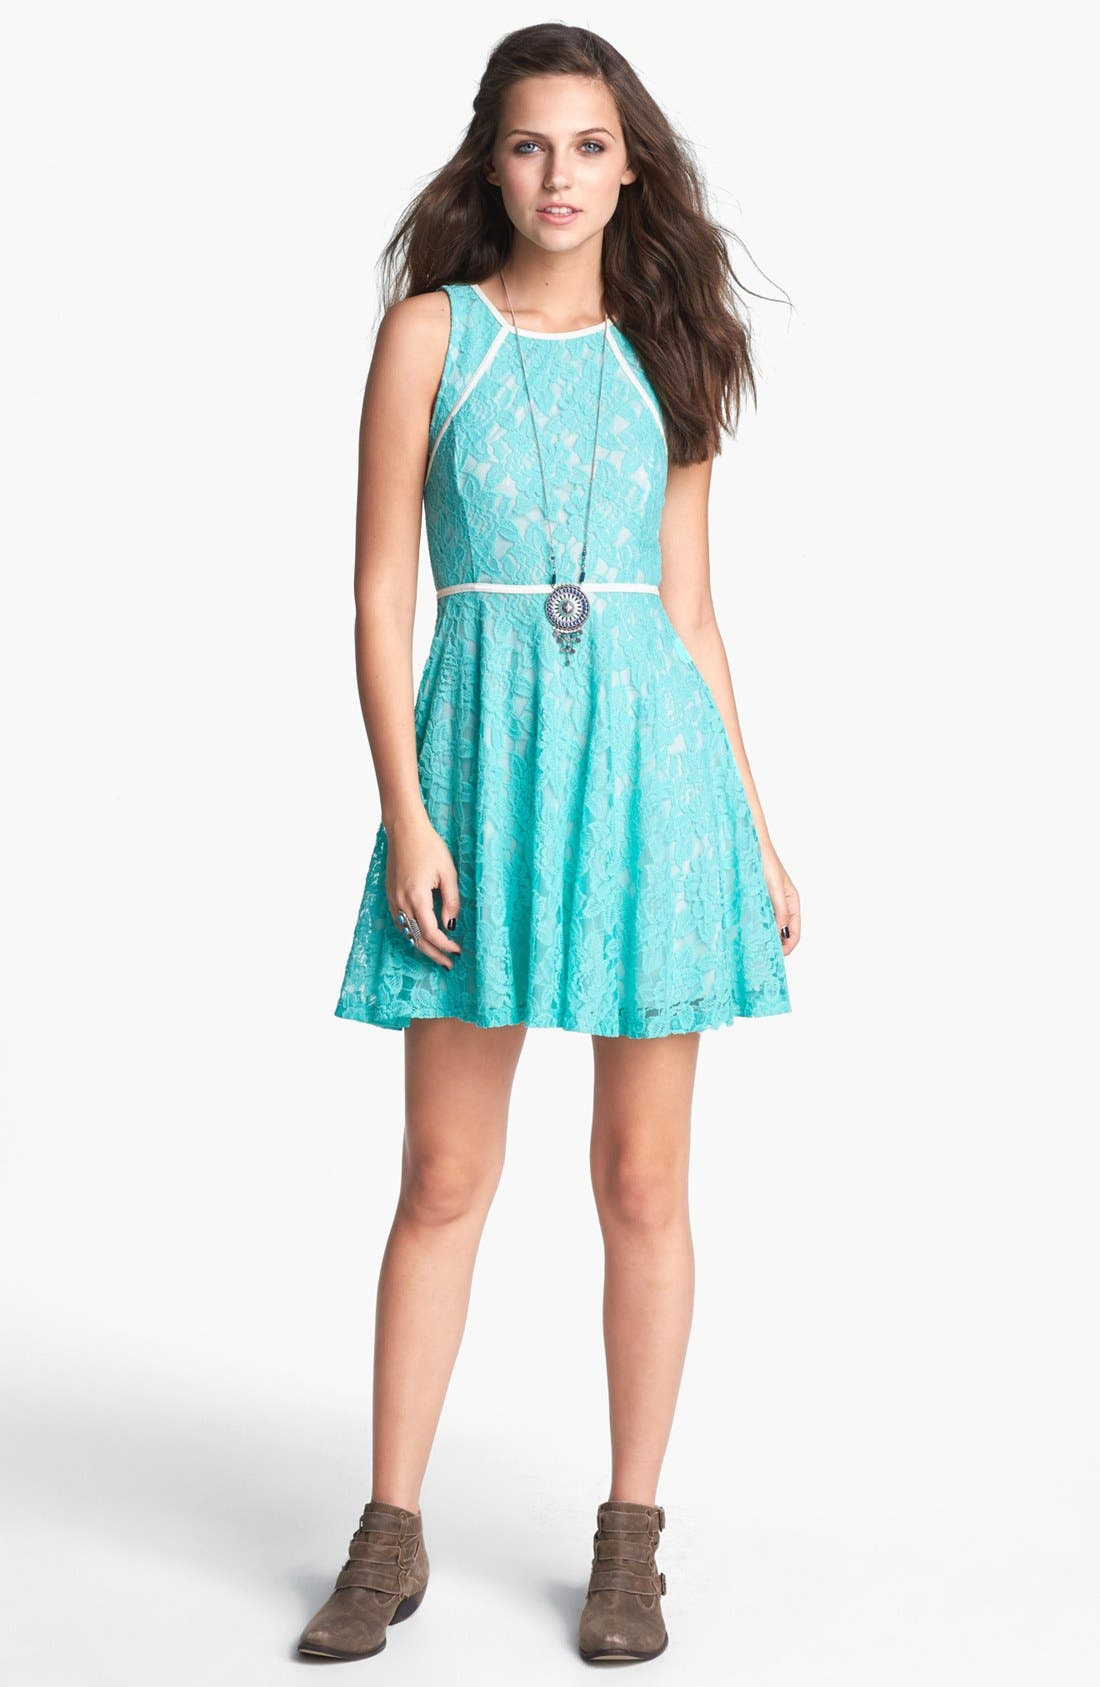 Alternate Image 1 Selected - Faux Leather Trim Lace Skater Dress